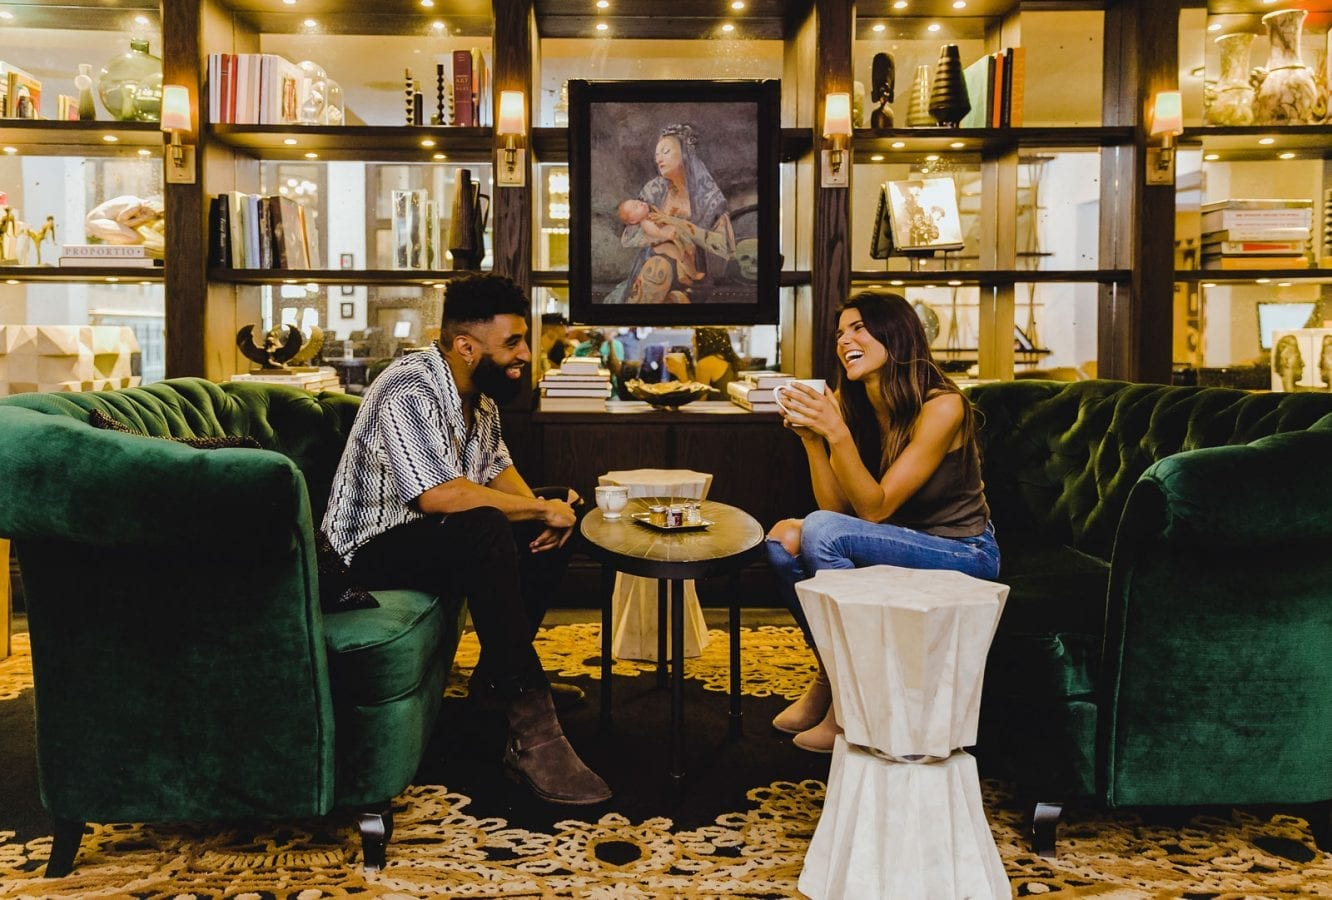 man and woman sitting on plush chairs having coffee and smiling